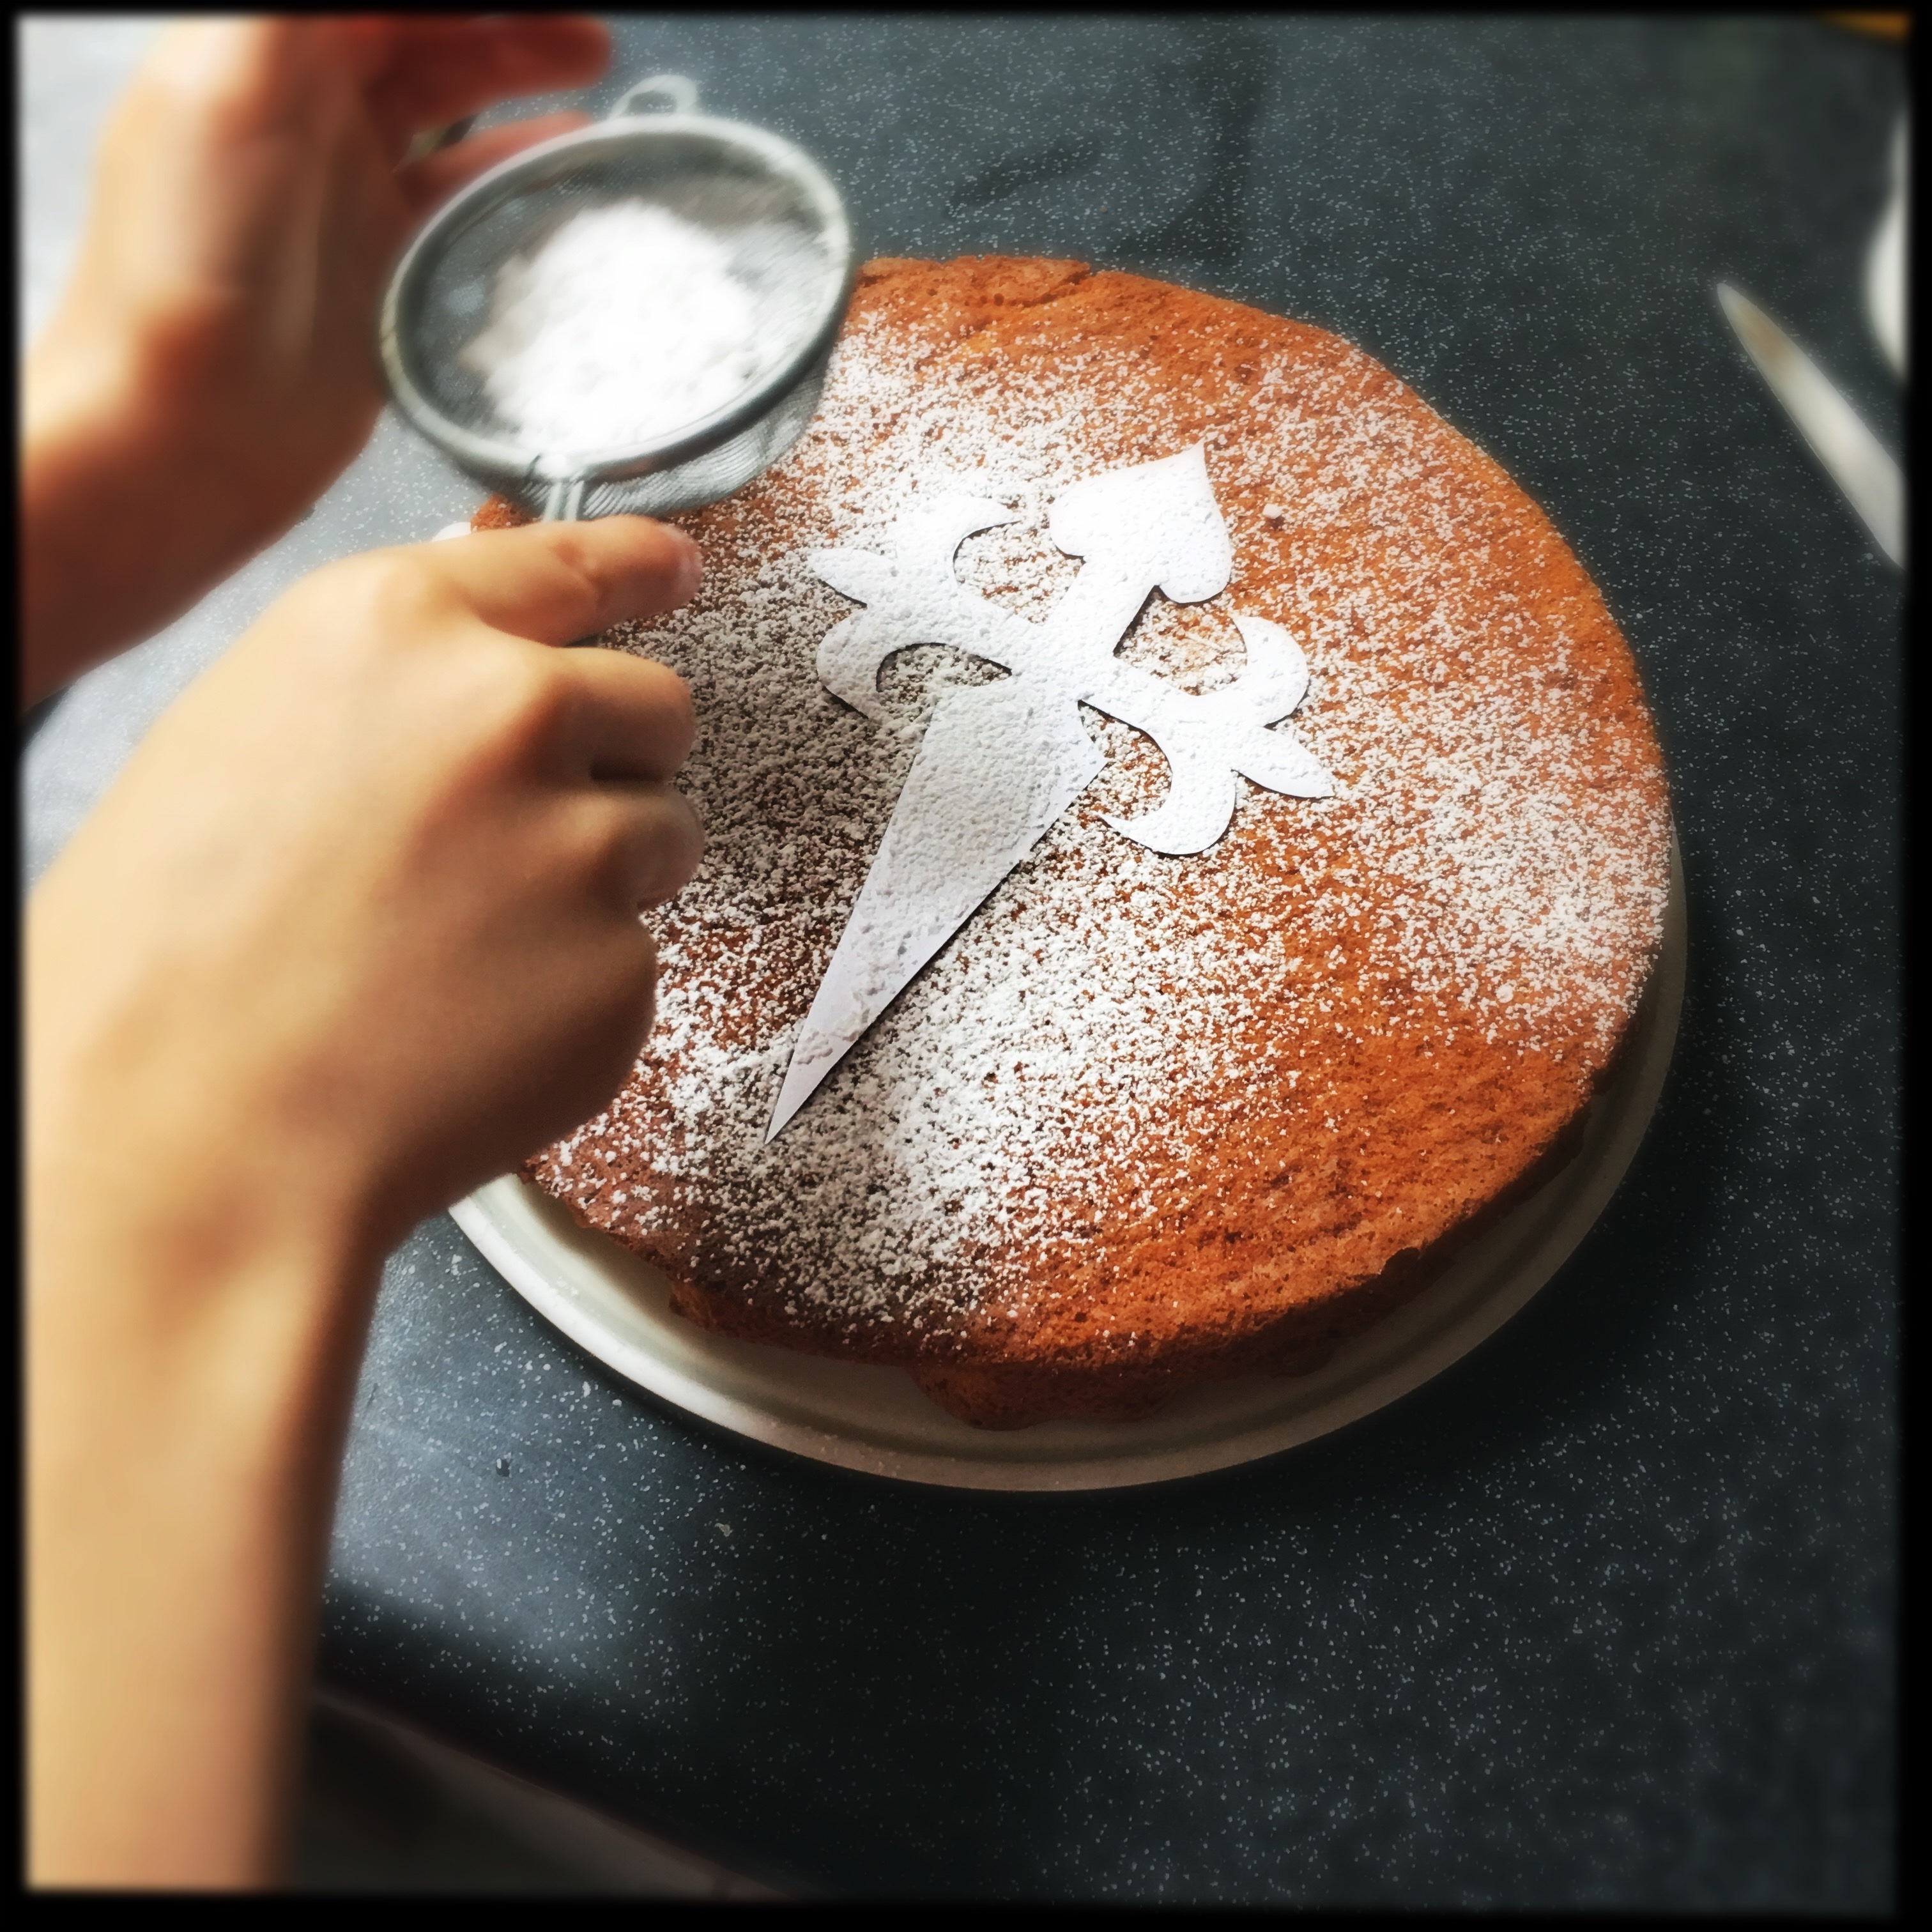 youngling dusting the tarta de santiago